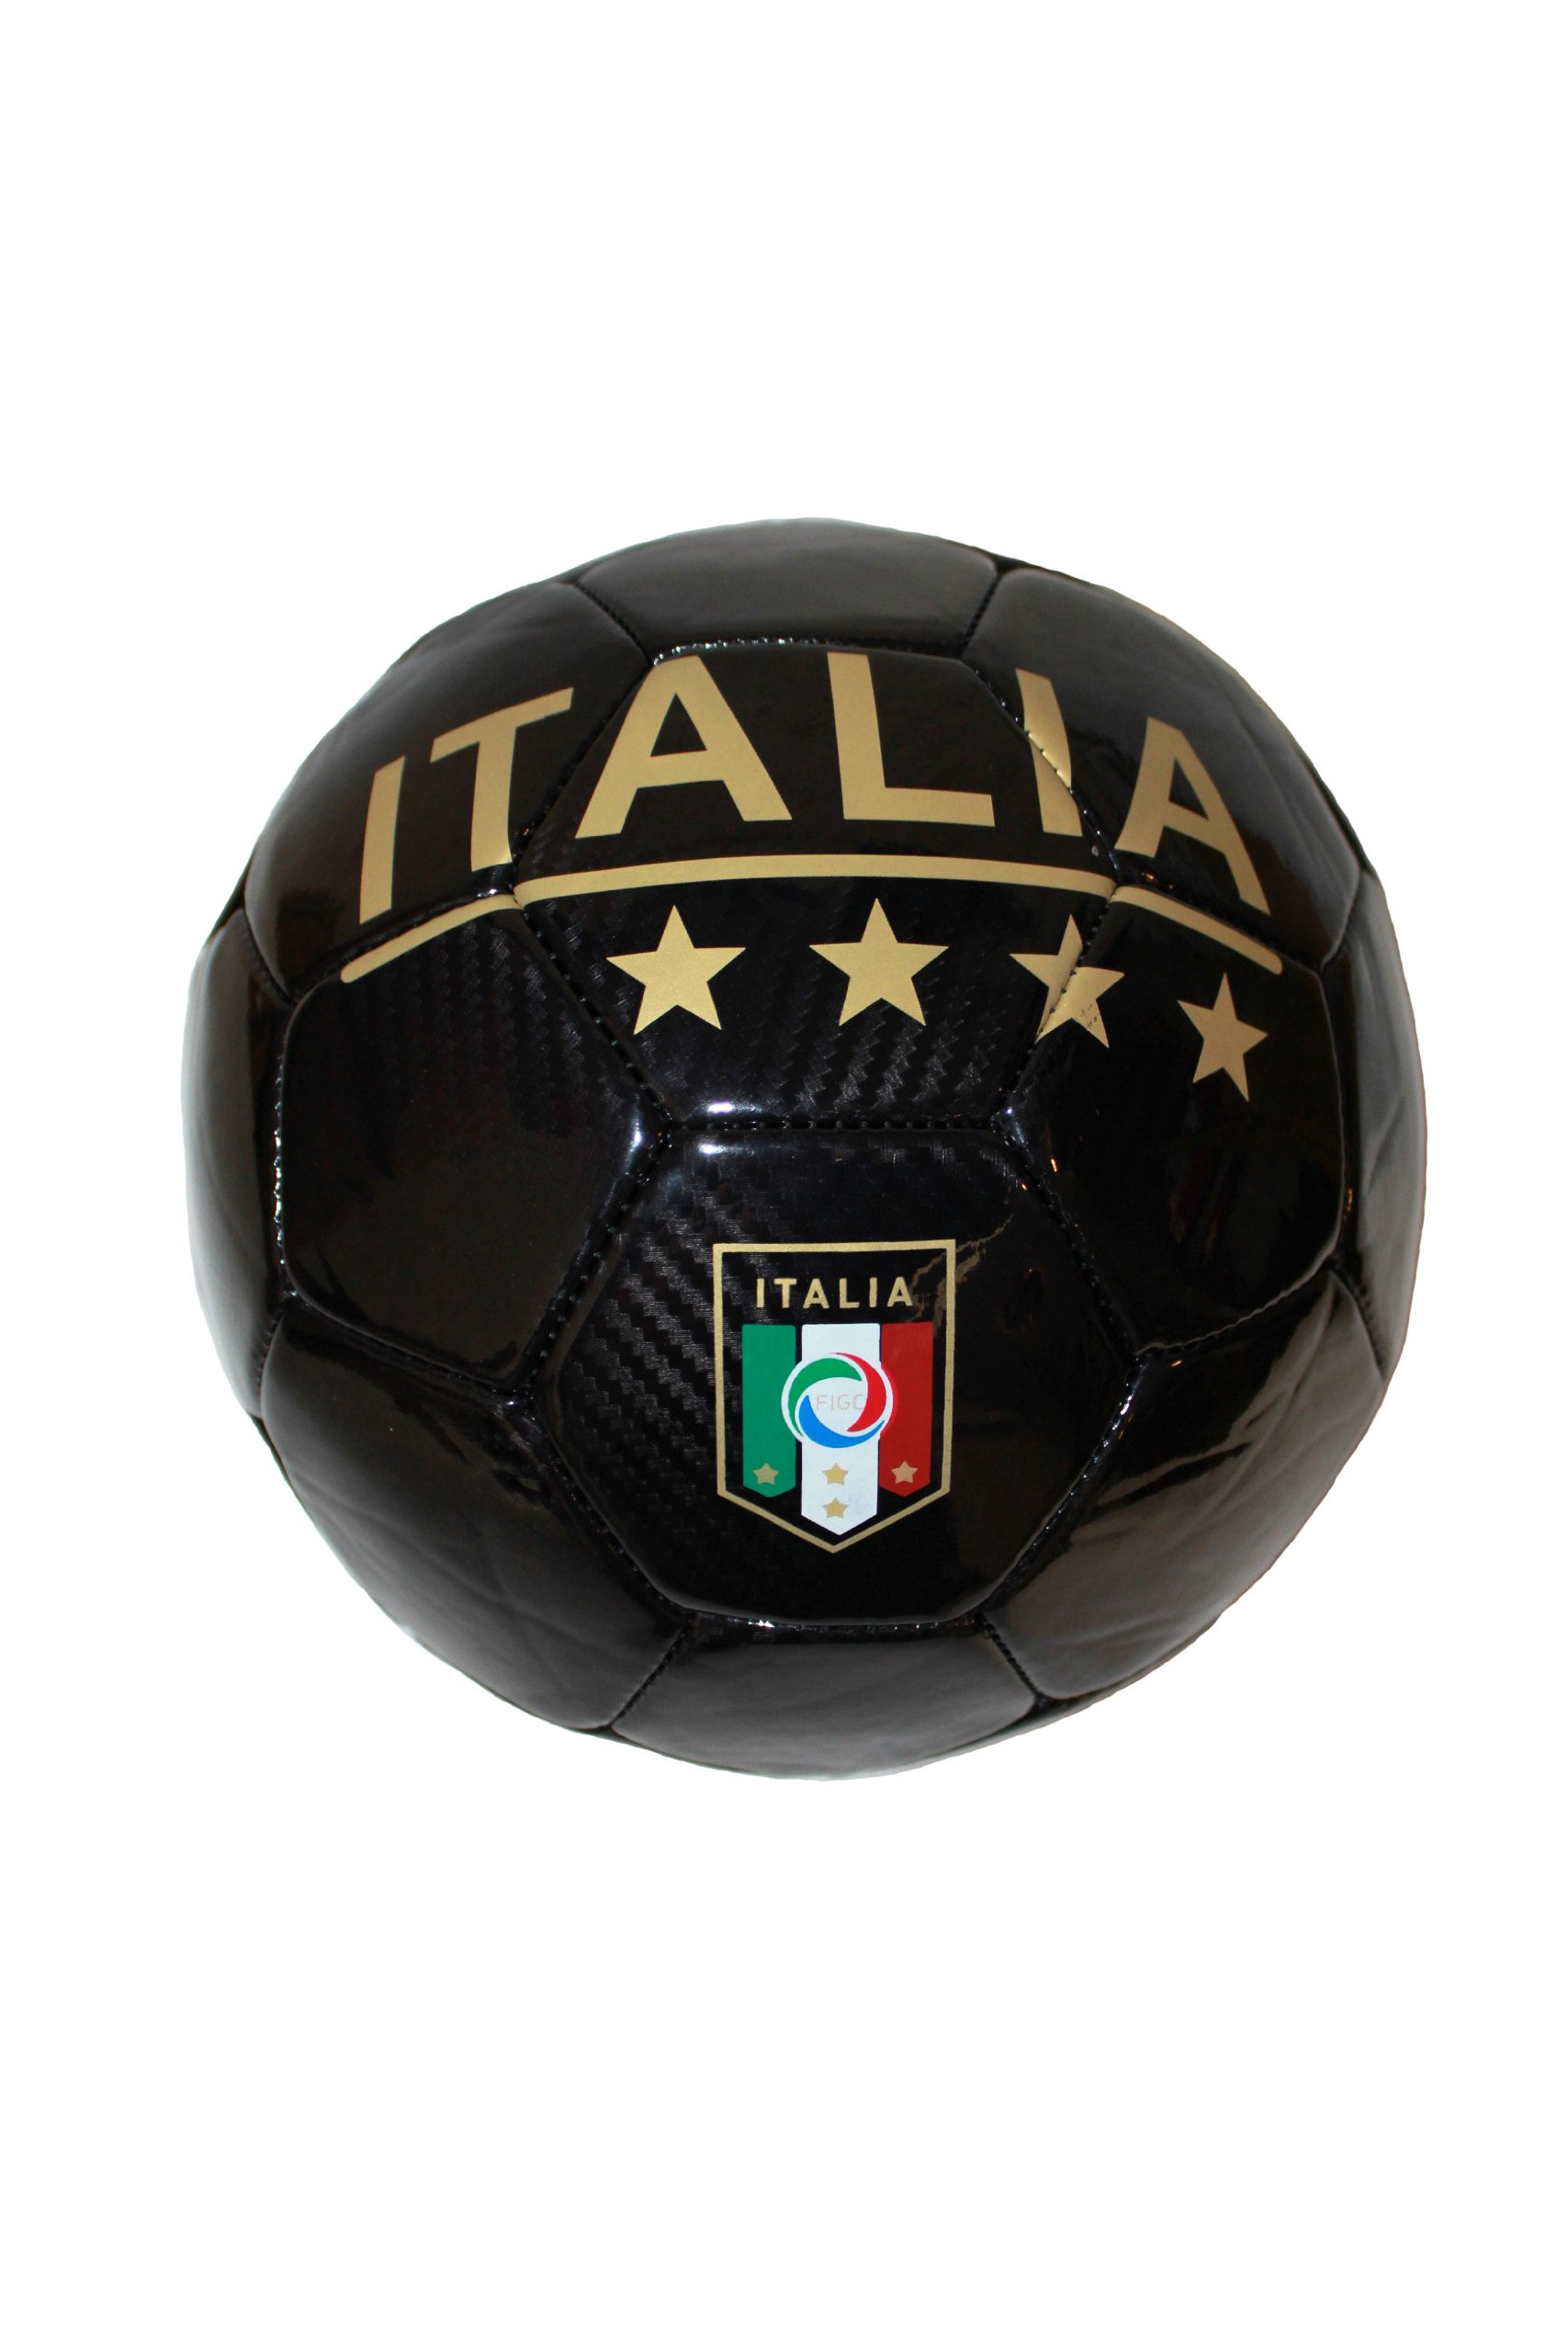 Italia Italy Black FIGC Logo FIFA World Cup Soccer Ball Size 5. New